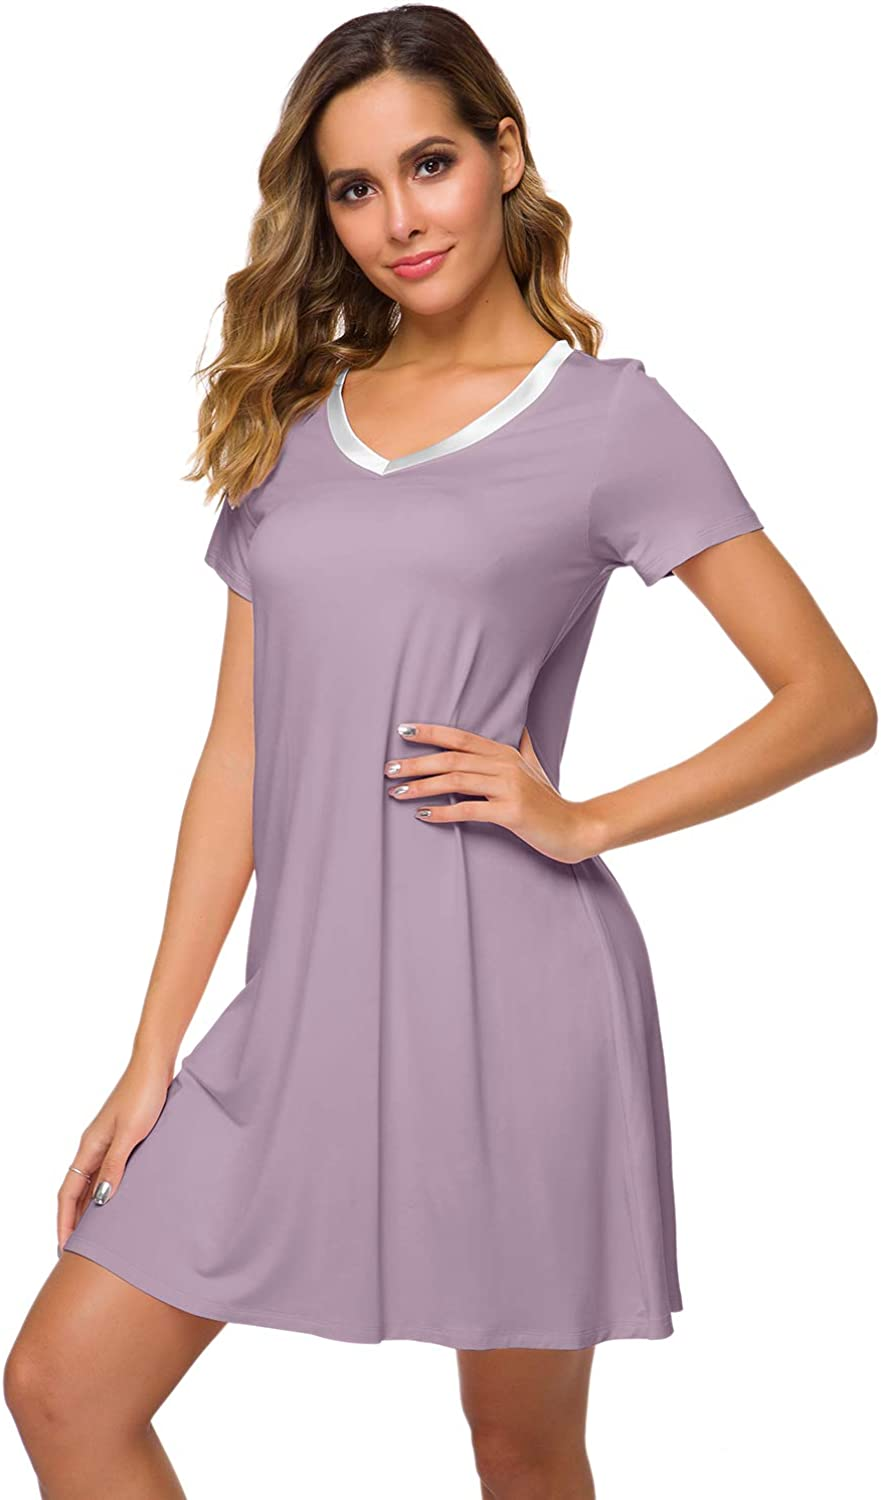 WiWi Womens V Neck Bamboo Nightgown Soft Short Sleeve S-4X